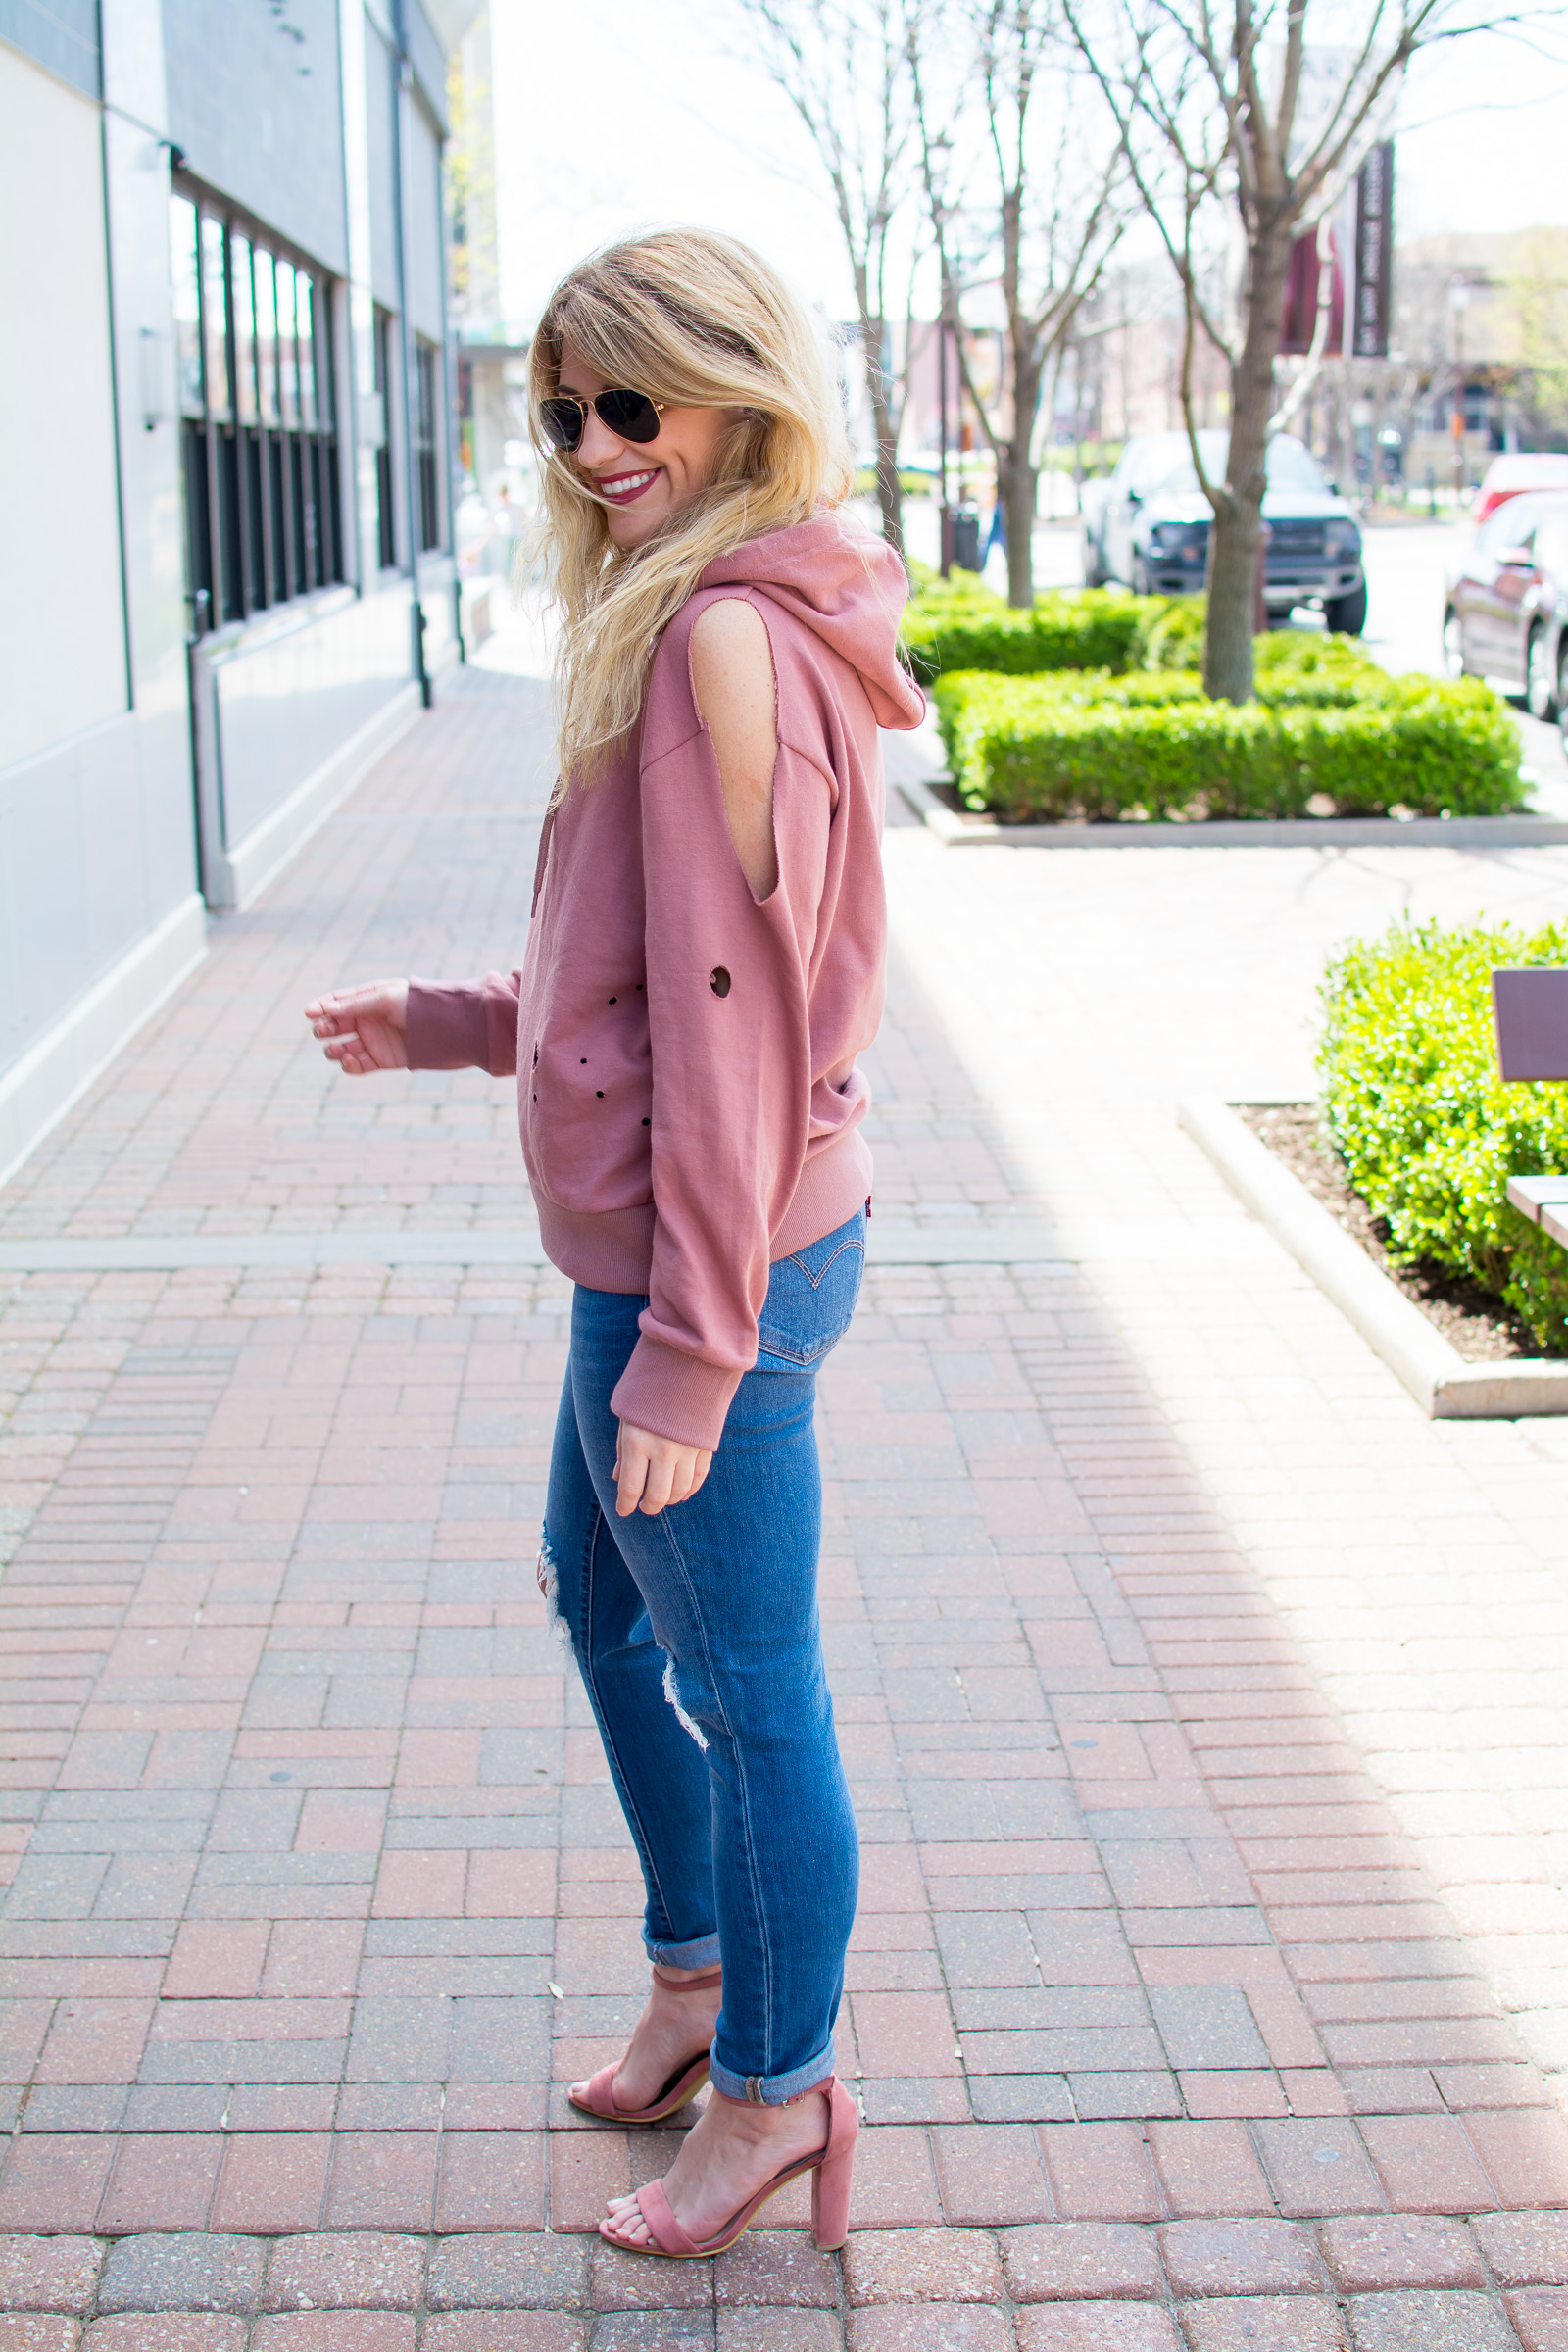 Destroyed Blush Hoodie + Heels. | Ashley from Le Stylo Rouge